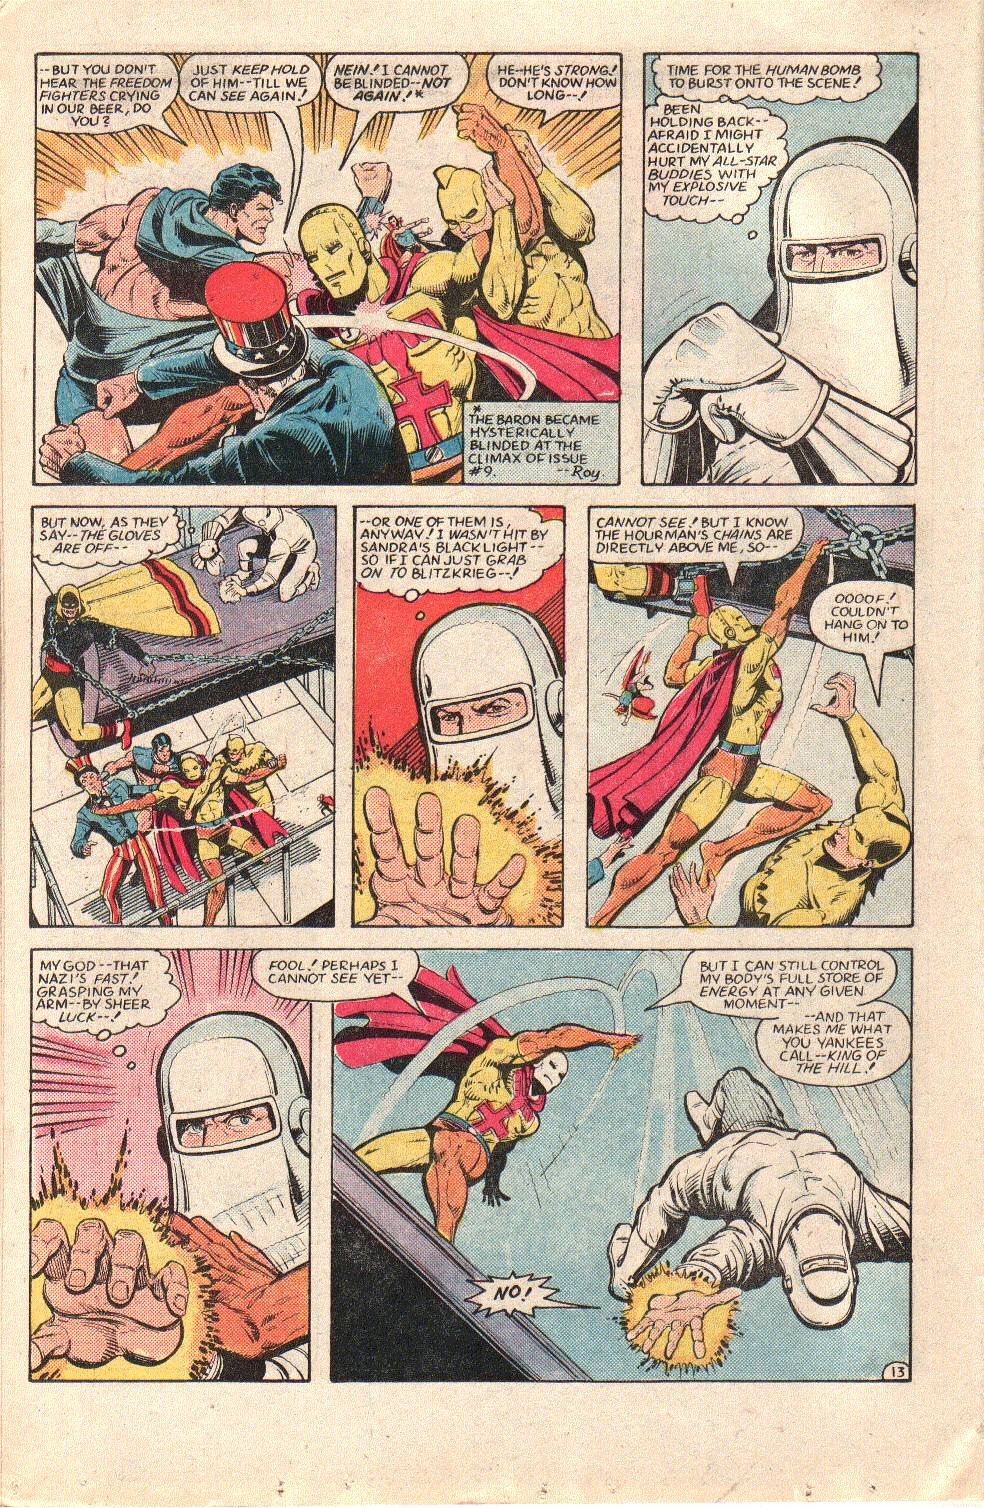 Read online All-Star Squadron comic -  Issue #34 - 18